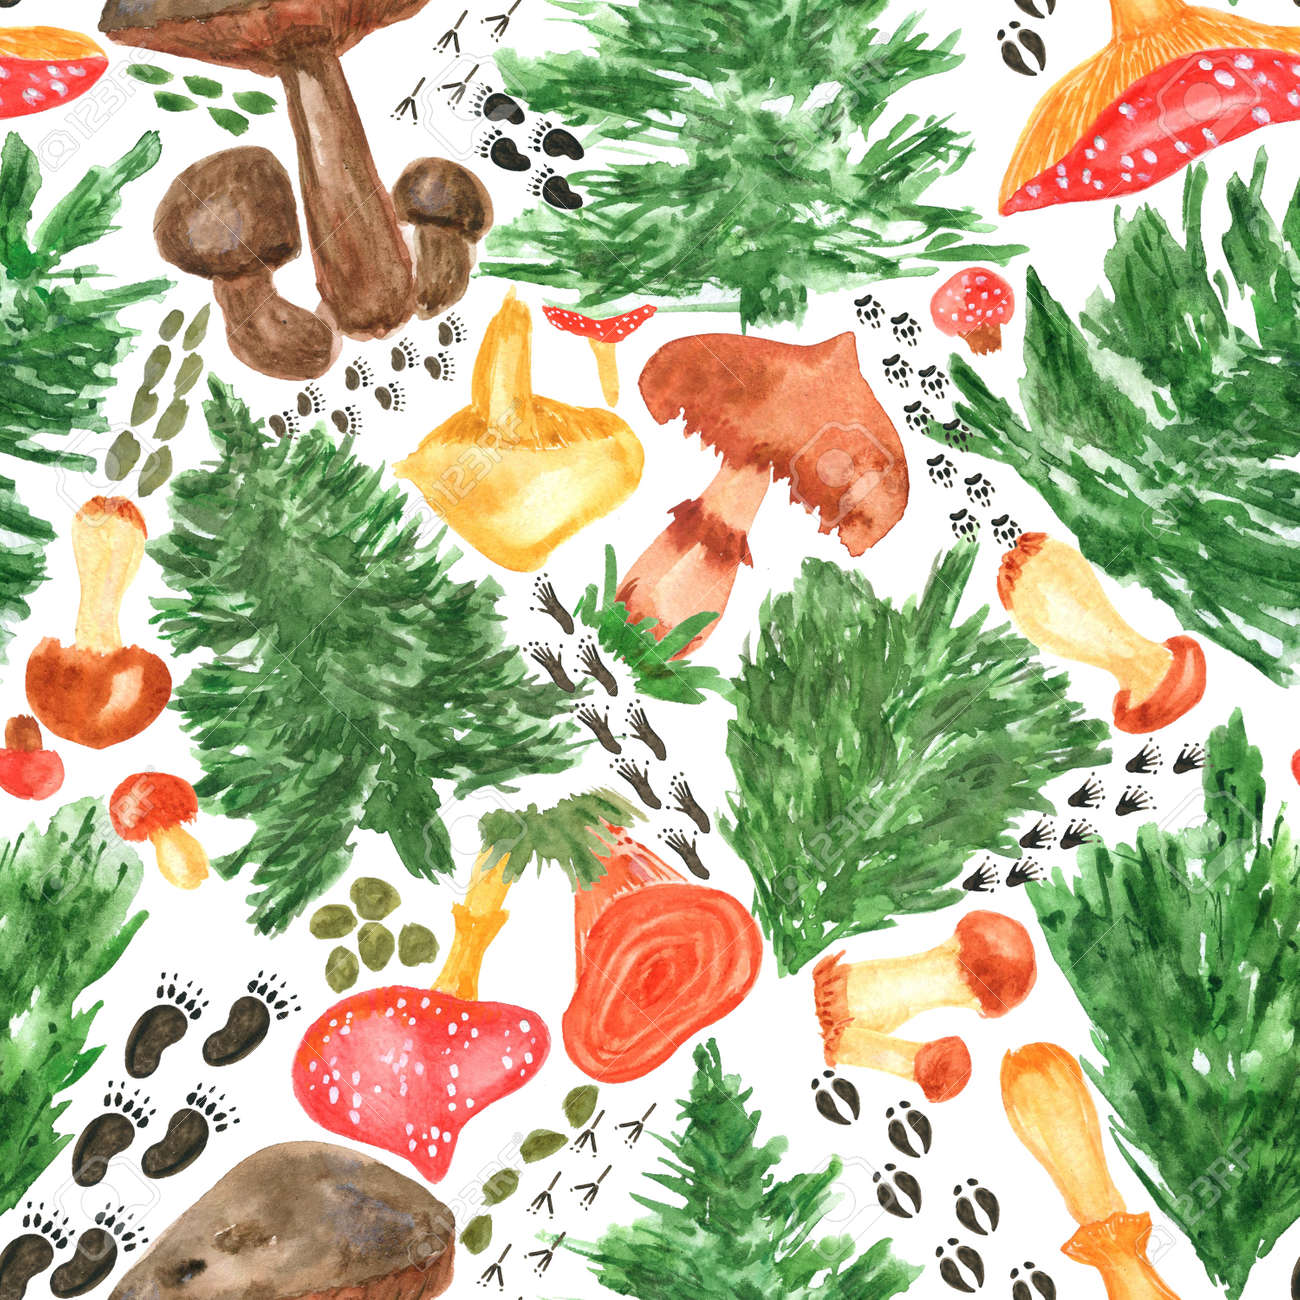 Colorful watercolor trees, animal footprints and mushrooms seamless pattern. Hand Illustration for creating fabrics, wallpapers, gift wrapping paper, invitations, textile, scrapbooking. - 165387219